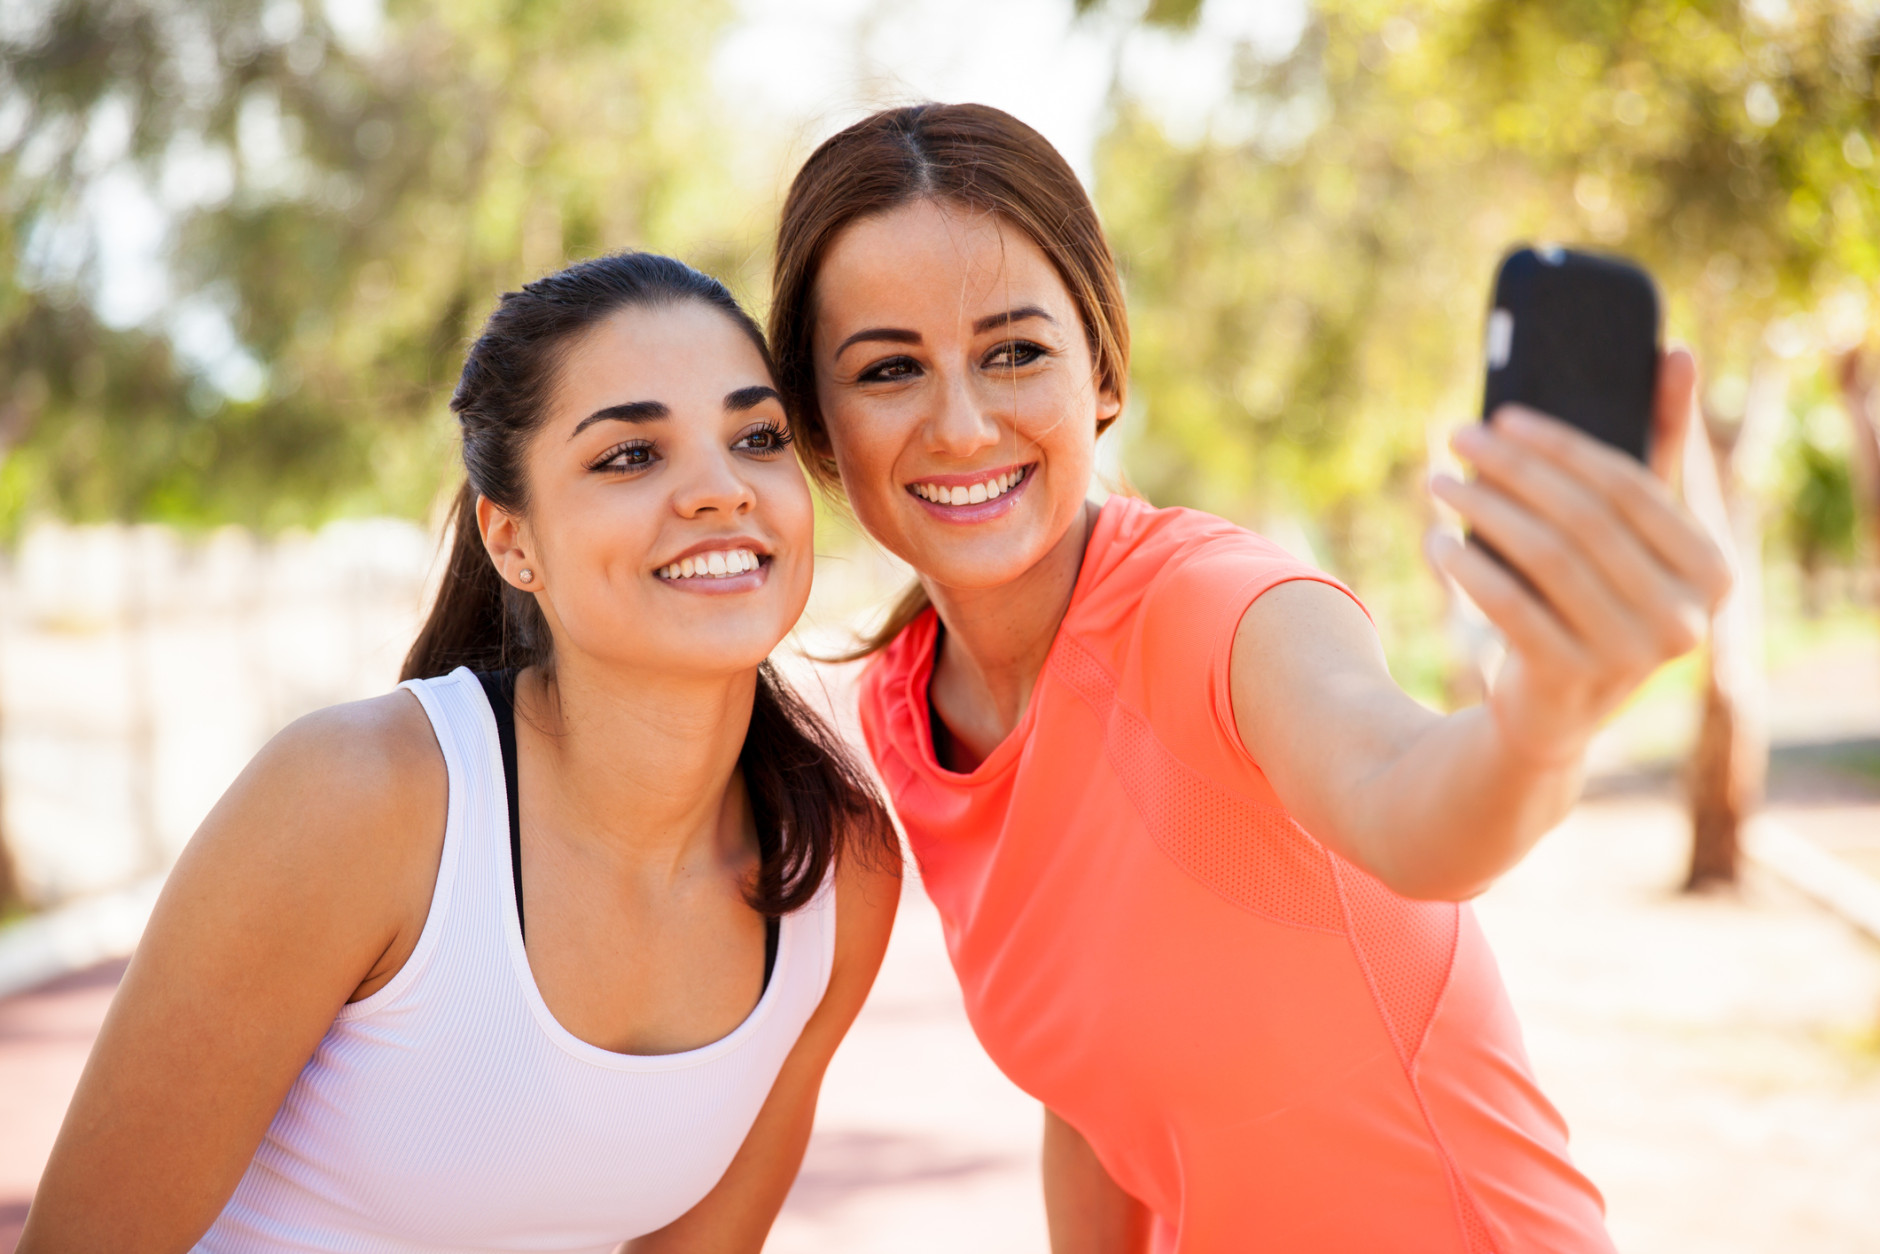 Beautiful girls taking a selfie with a smart phone before going for a run outdoors